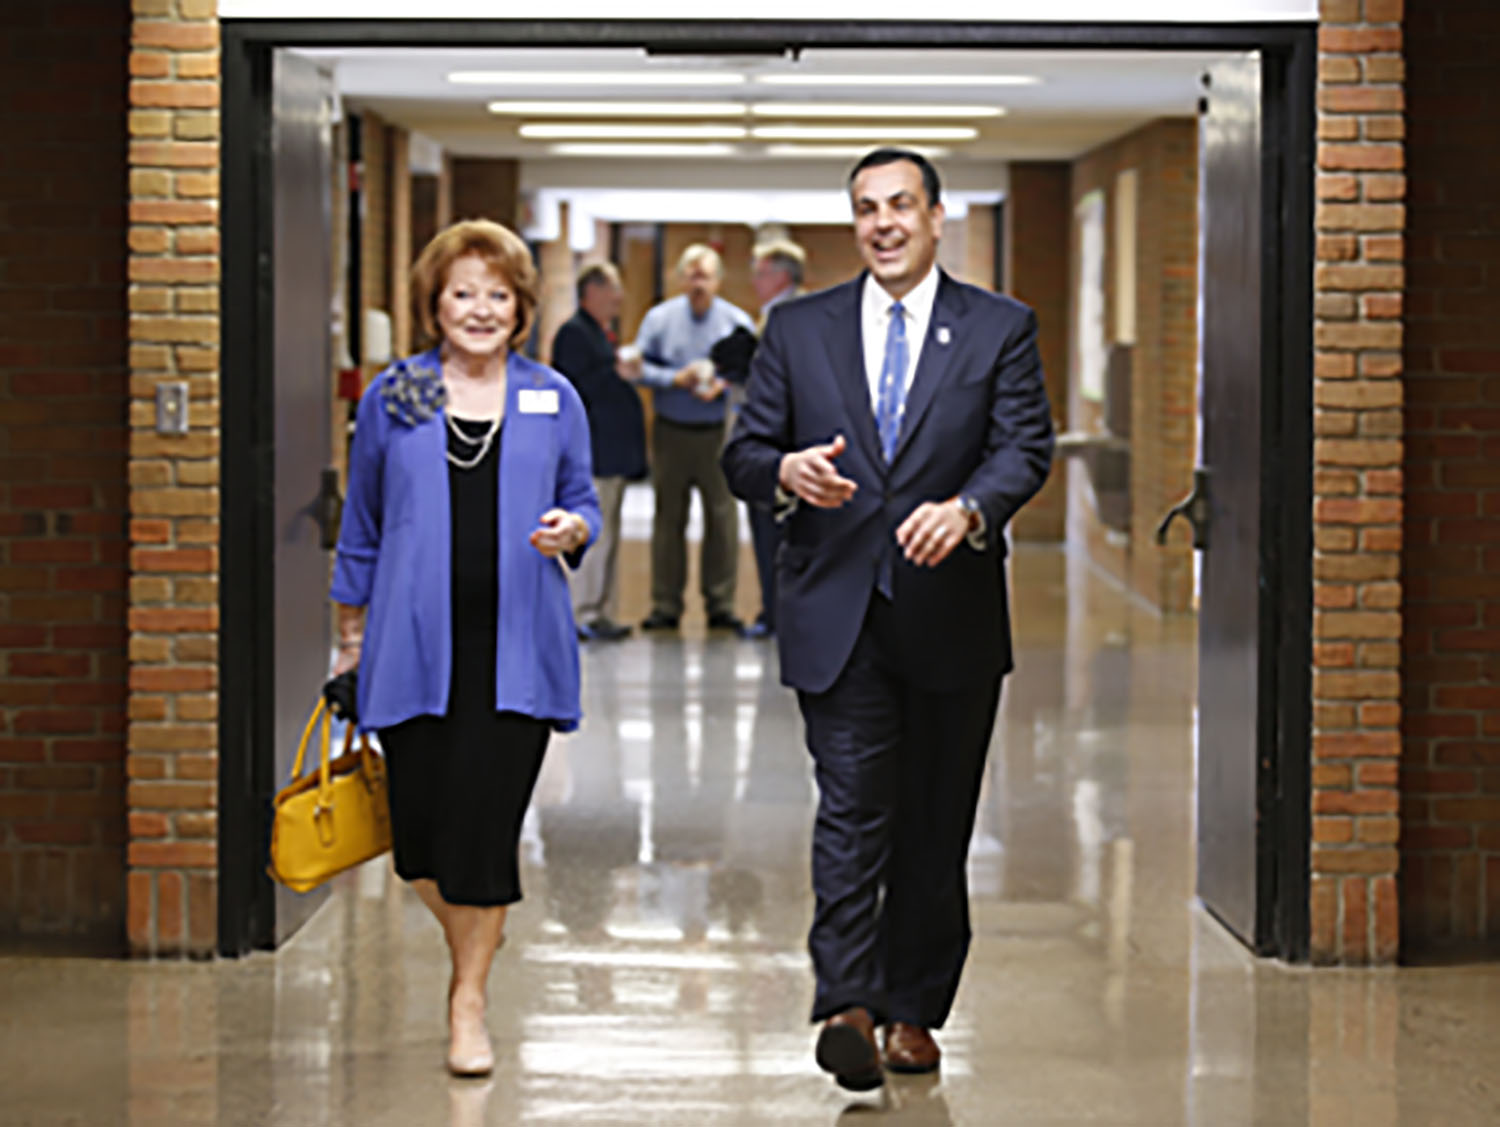 Incoming President, Joseph L. Chillo, LP.D., right, is photographed during a welcome ceremony on the Thomas More University campus in Crestview Hills, Ky.,Thursday, May 23, 2019.